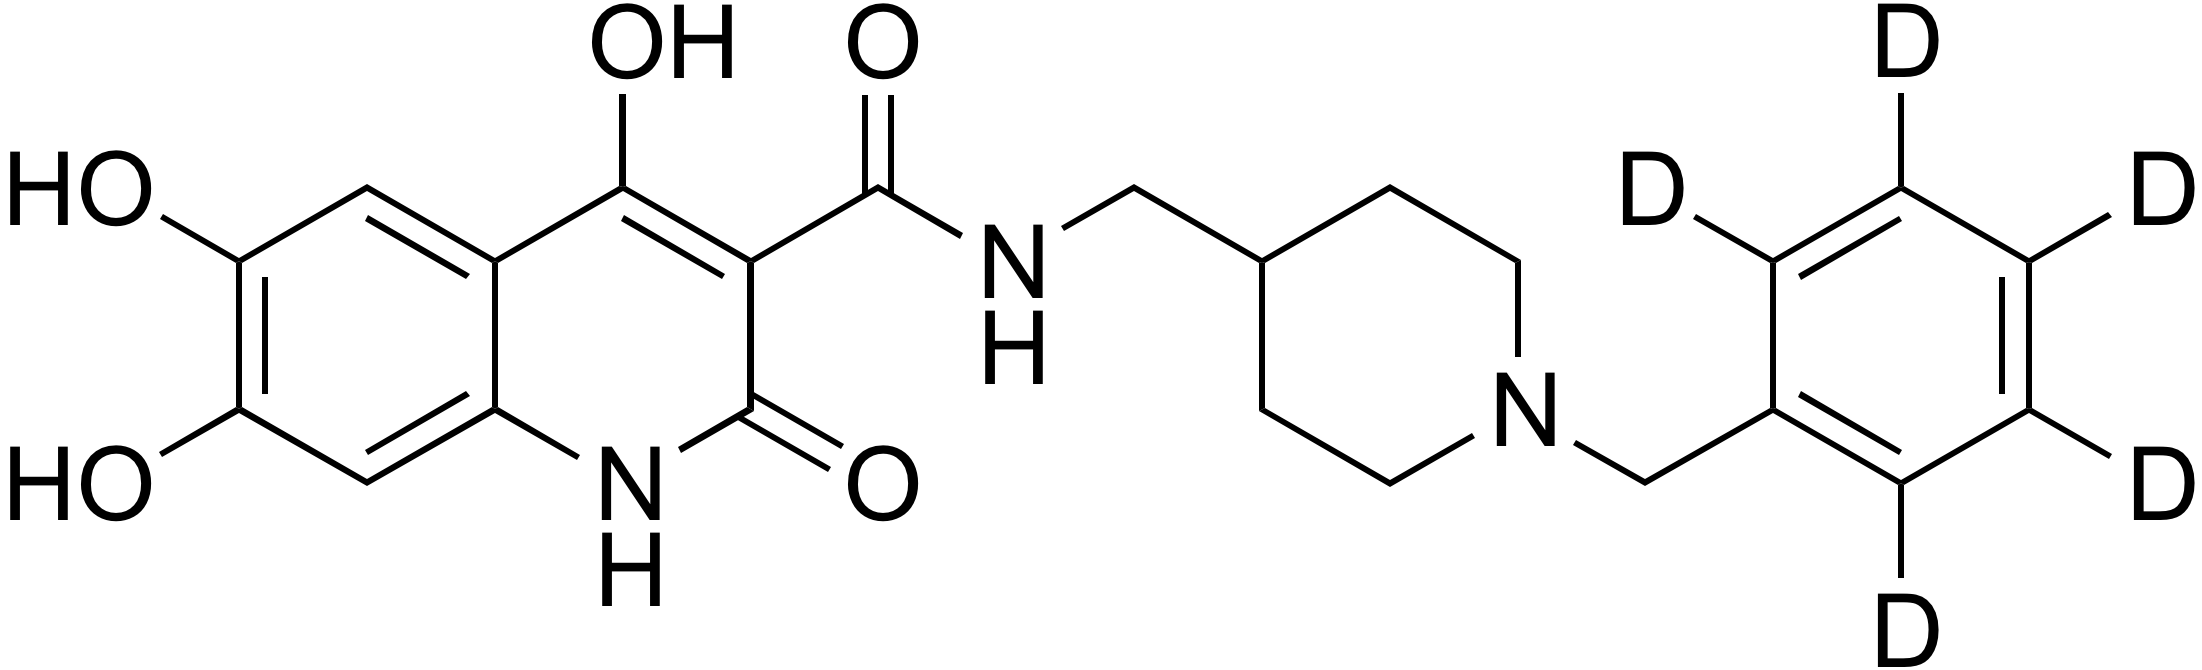 N-((1-Benzyl-d<sub>5</sub>-piperidin-4-yl)methyl)-4,6,7-trihydroxy-2-oxo-1,2-dihydroquinoline-3-carboxamide